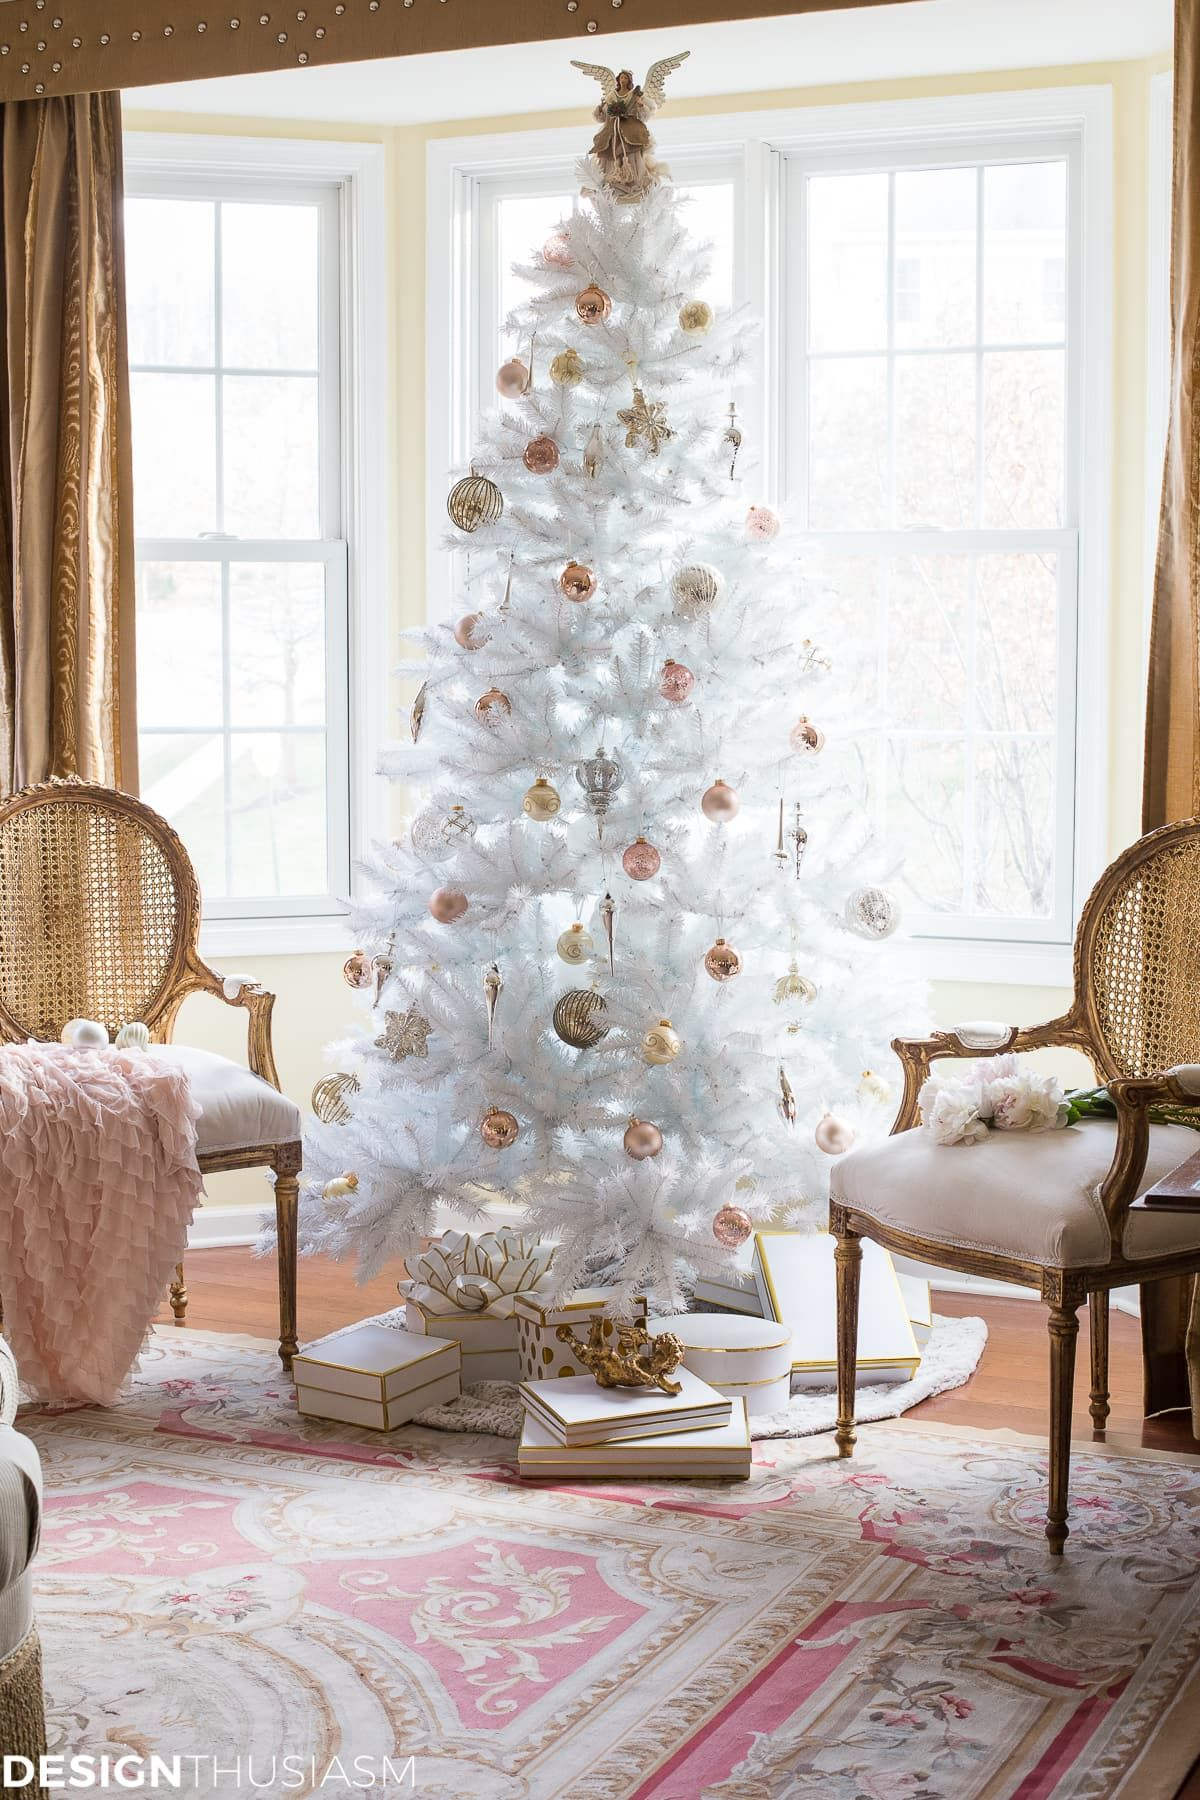 complementing your french style with a white christmas tree designthusiasmcom - French Style Christmas Decorations